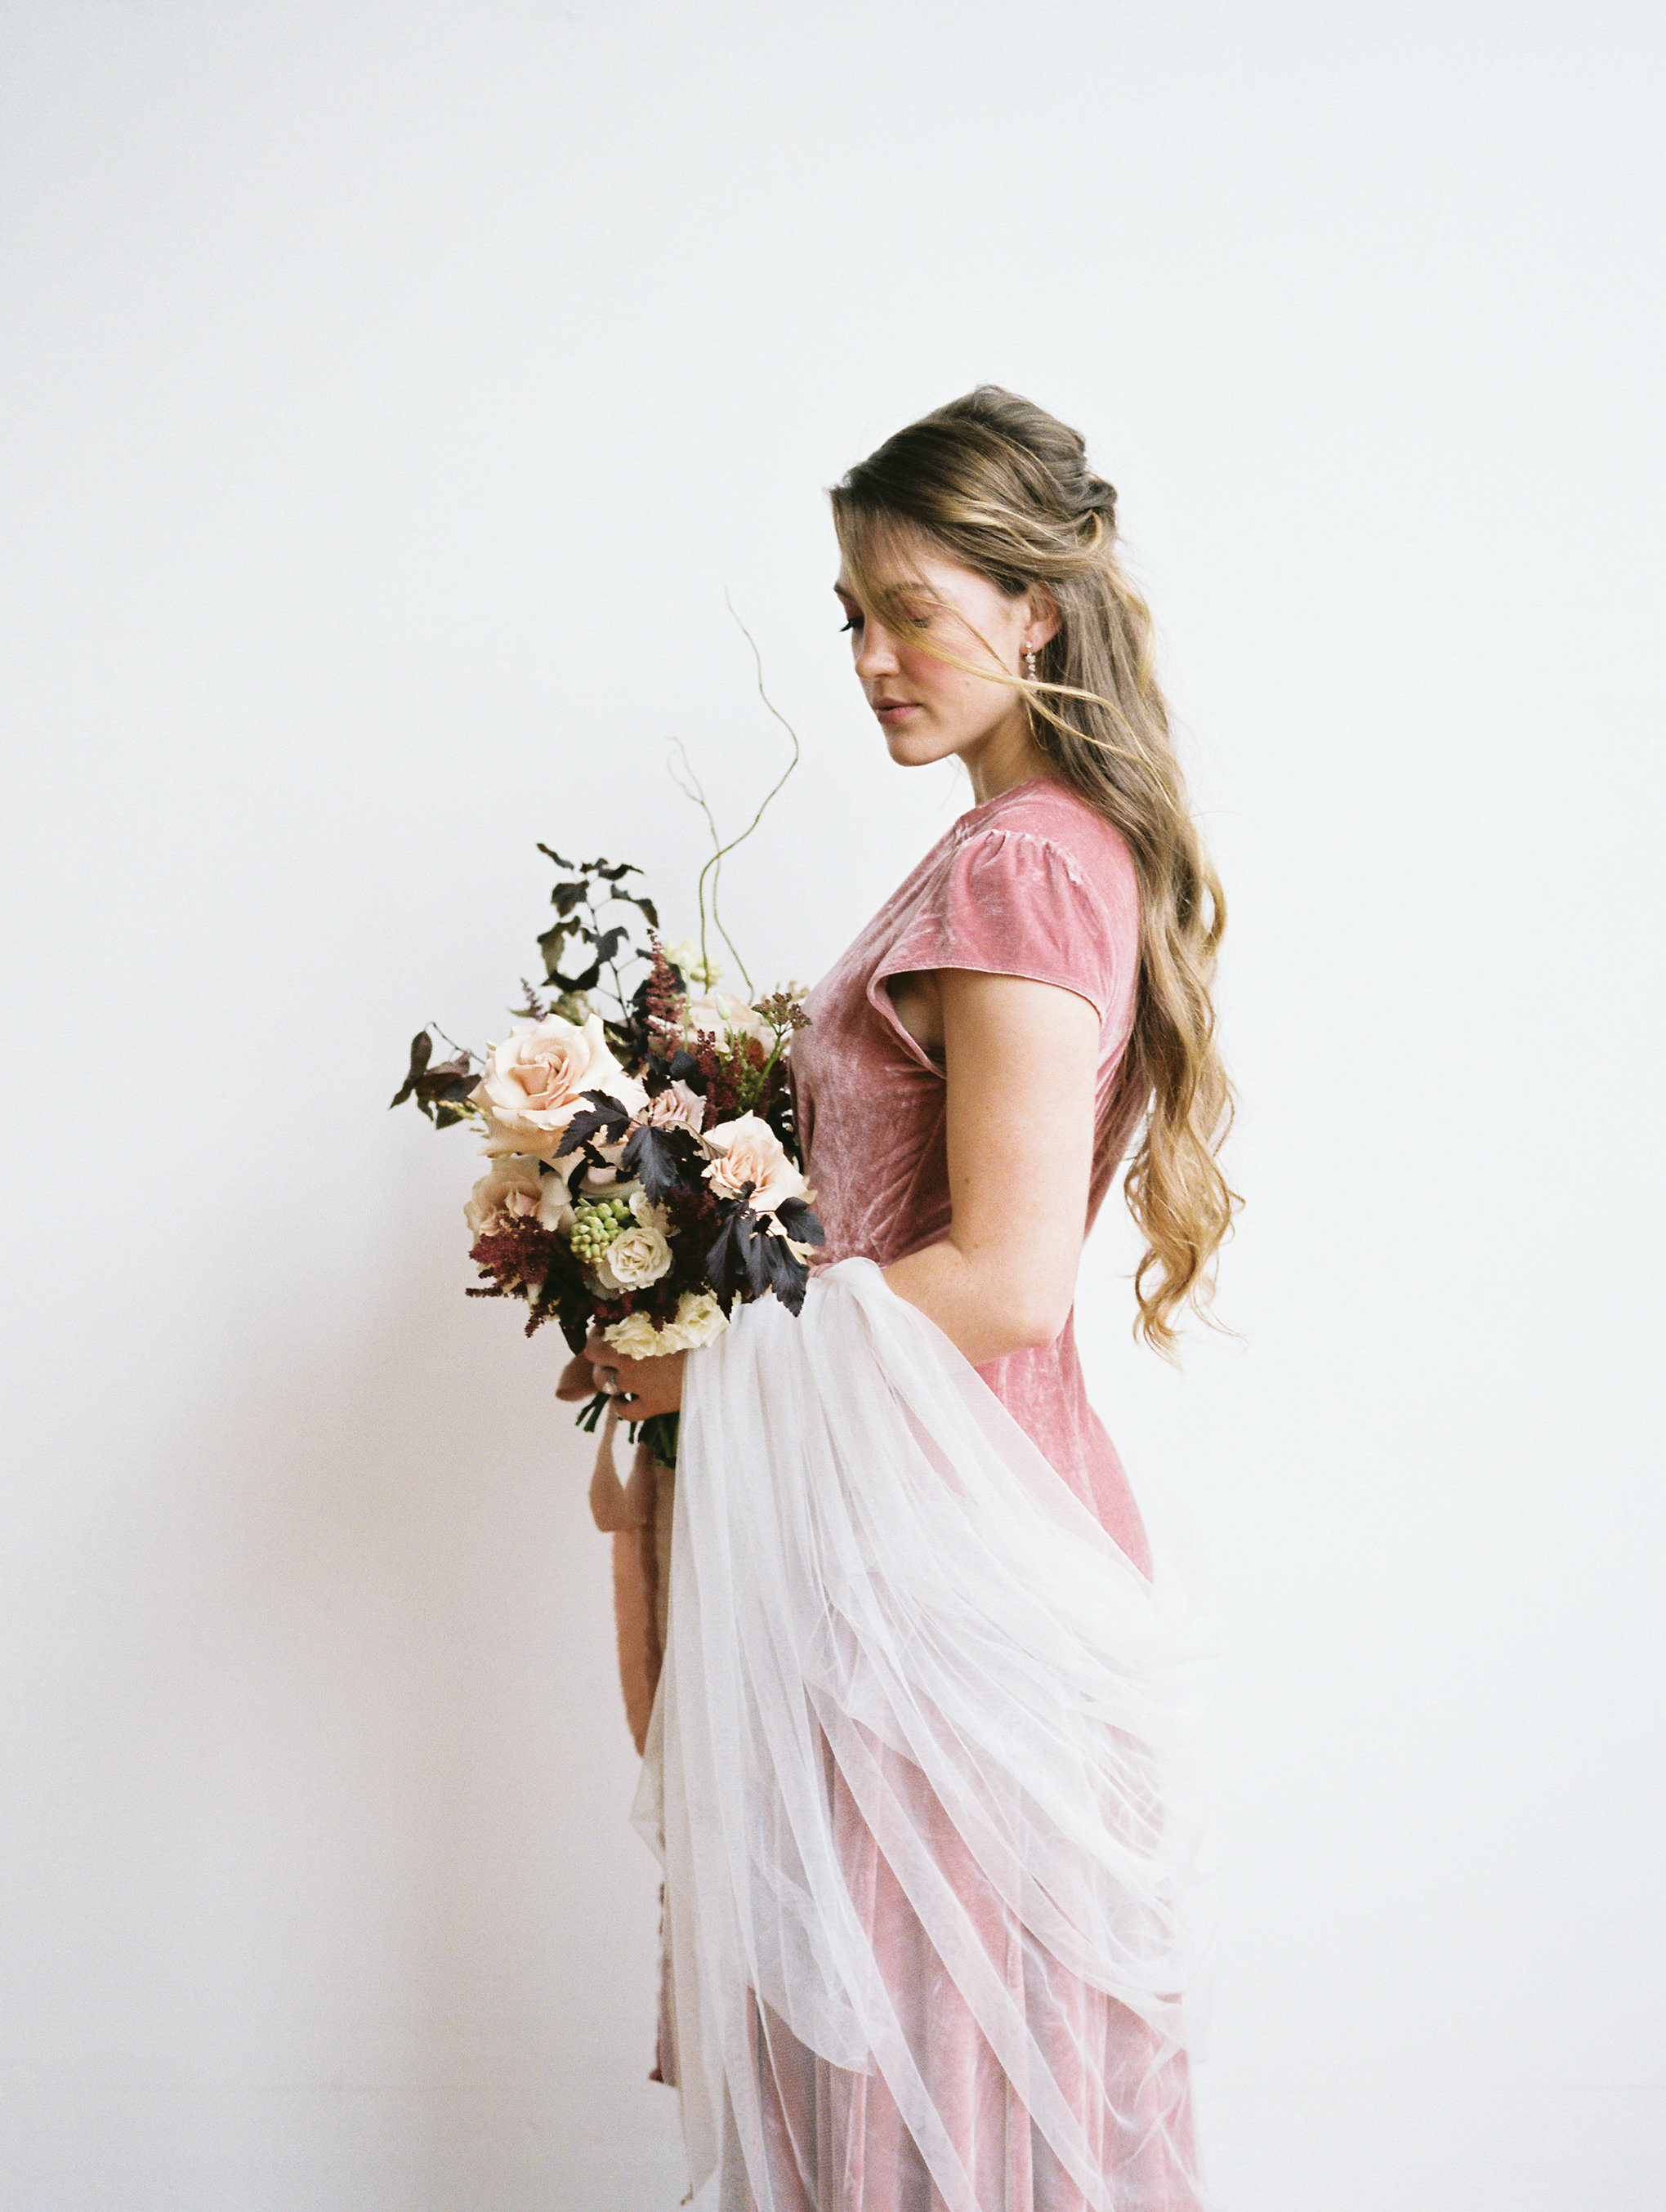 WHEN-SHE-KNEW-PHOTOGRAPHY-STYLED-WEDDING-EDITORIAL-OREGON-63.jpg